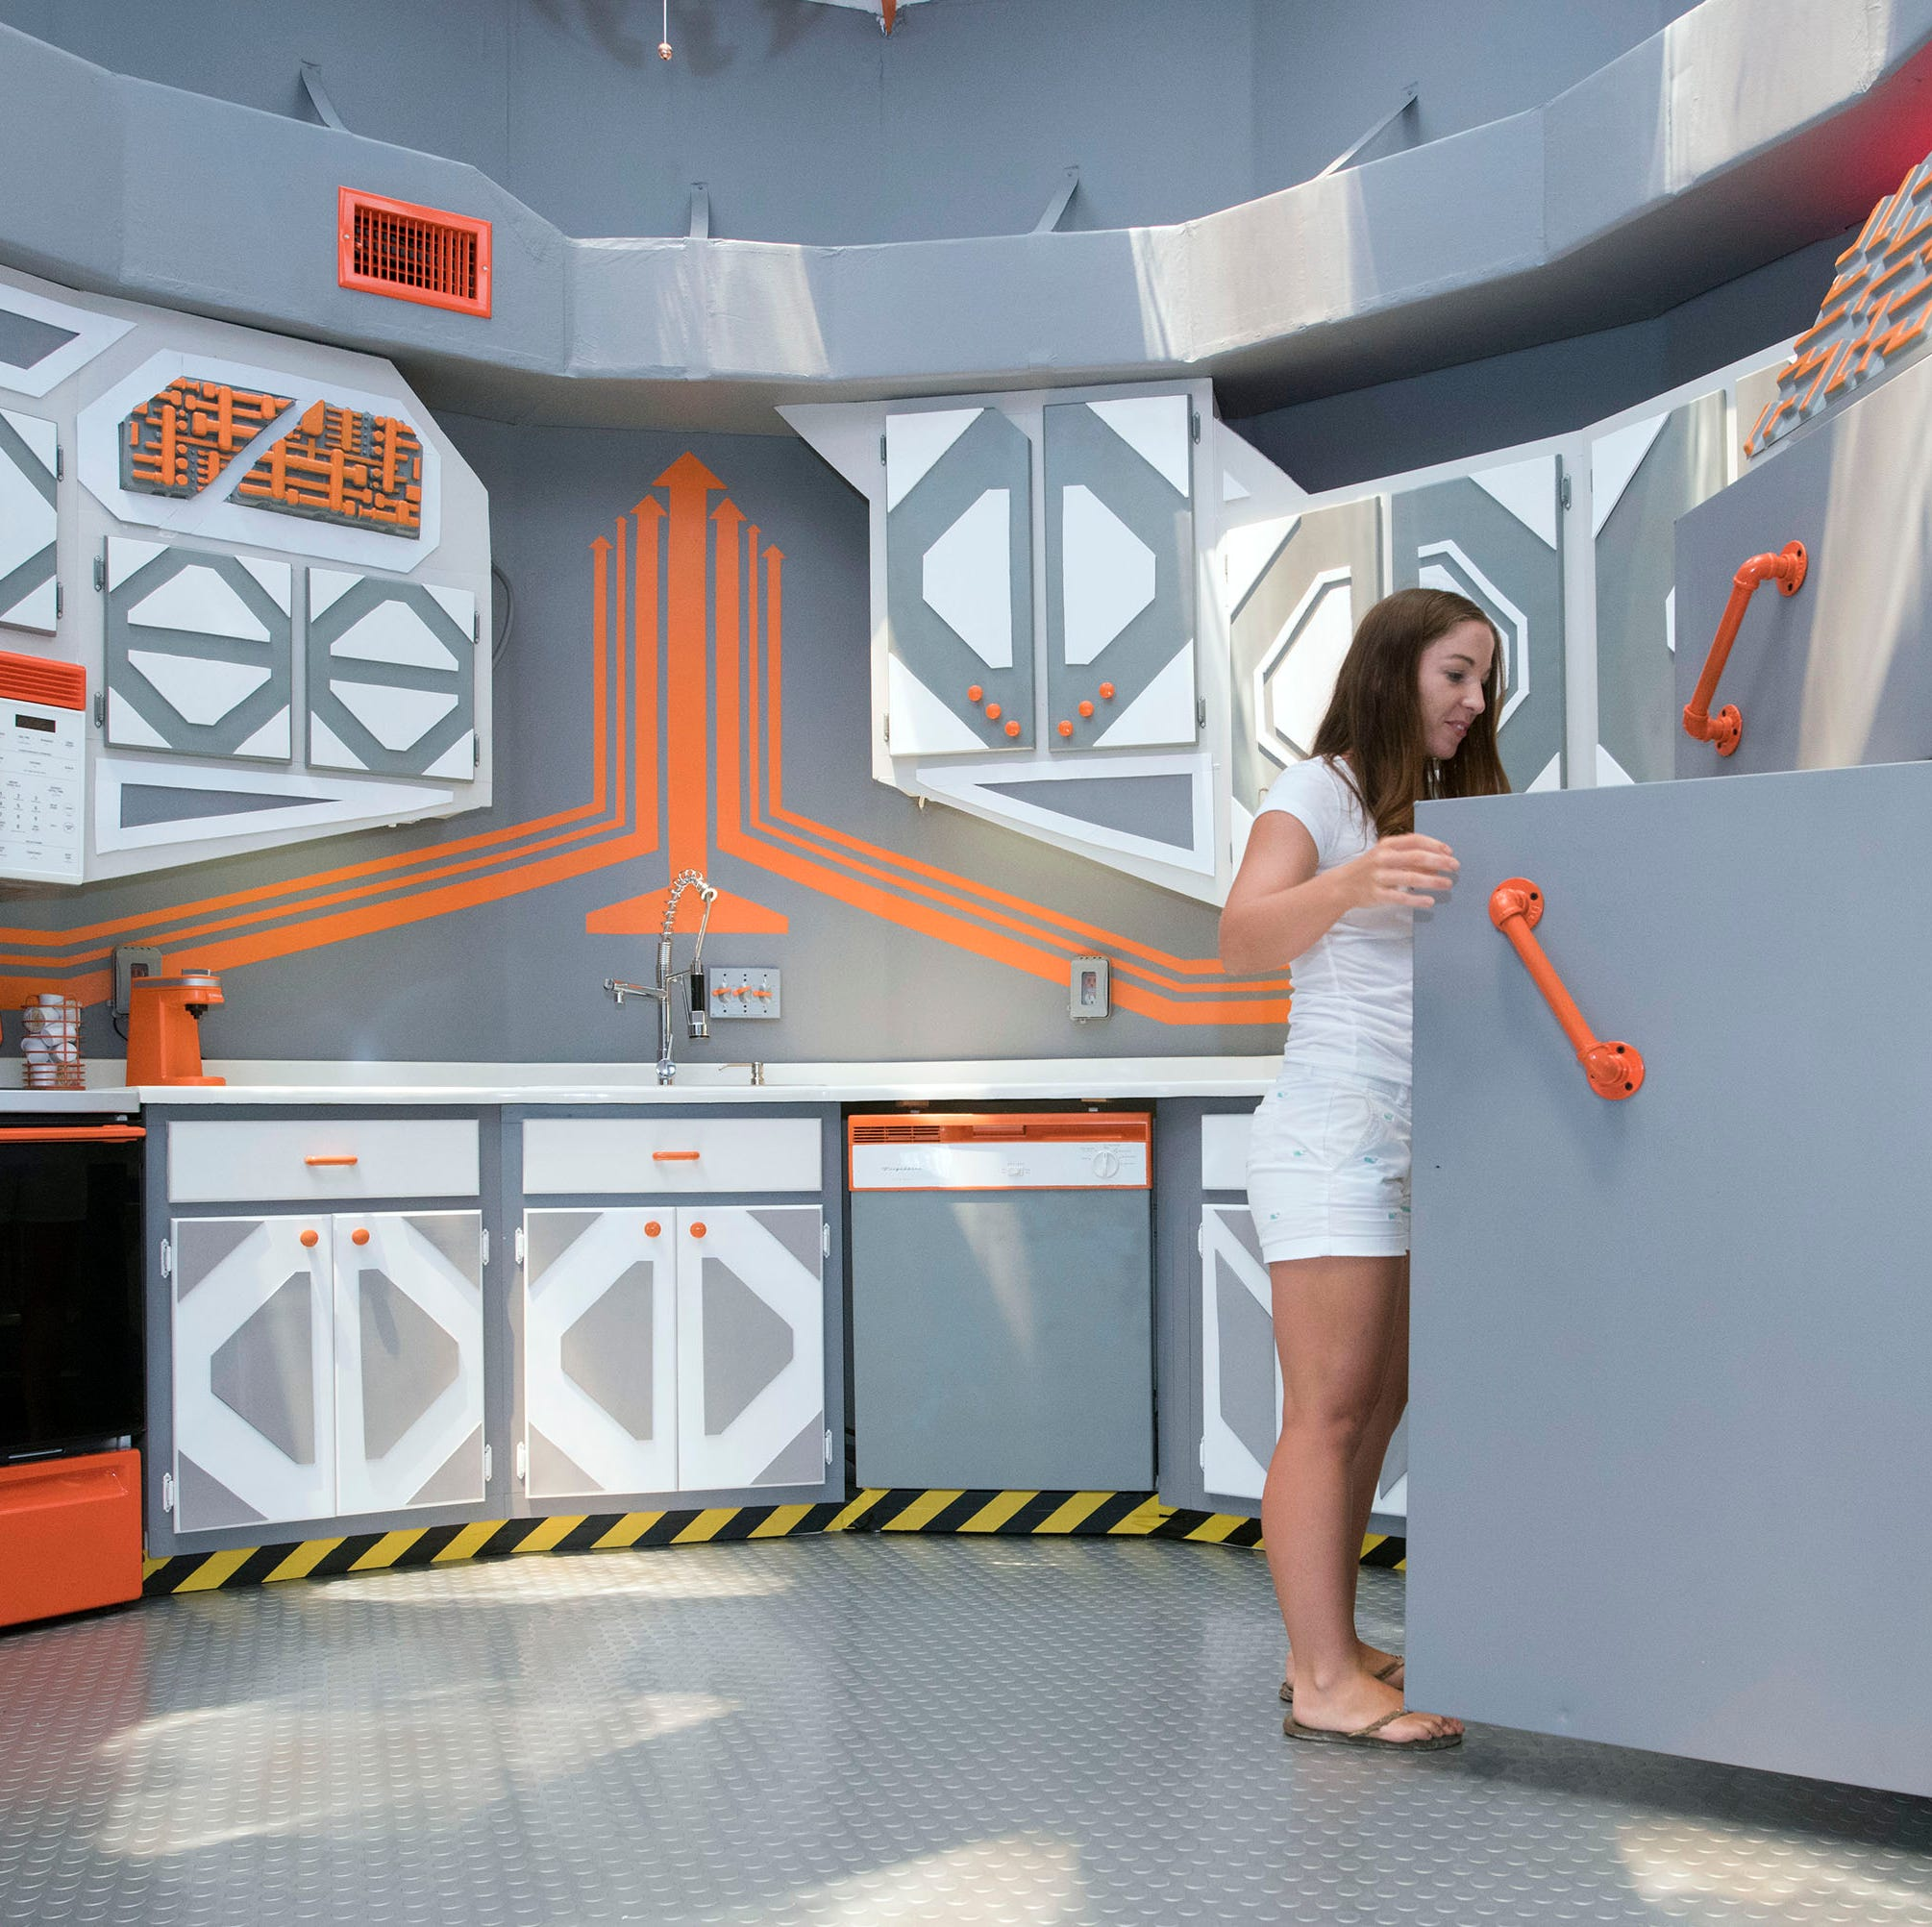 Navarre Area 51: 'Spaceship House' gets galactic makeover — and you can rent it out!